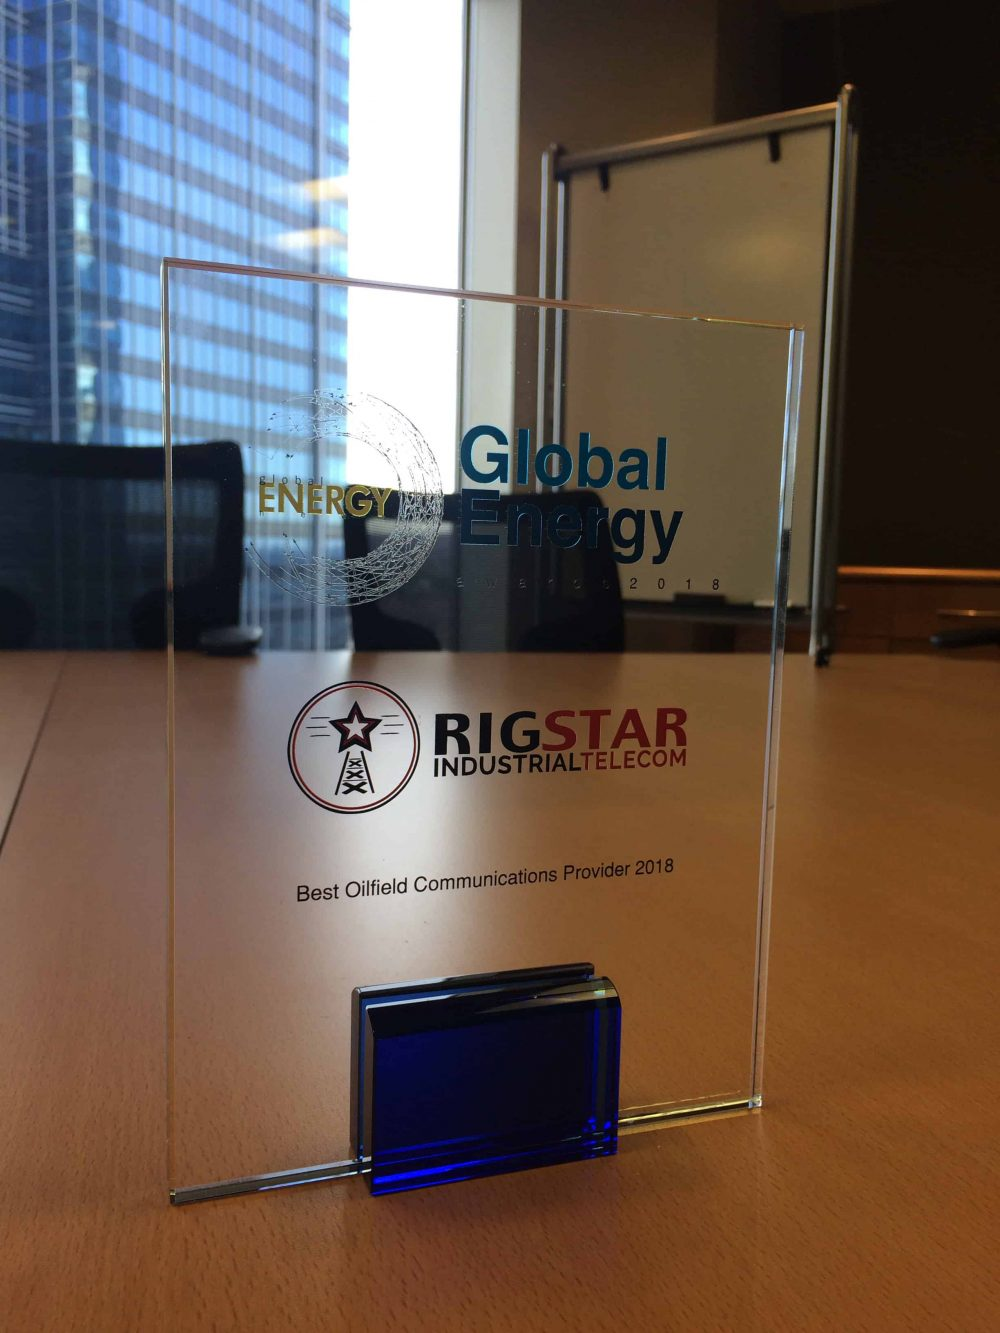 Rigstar_Global-Energy-Award_v1-2-1